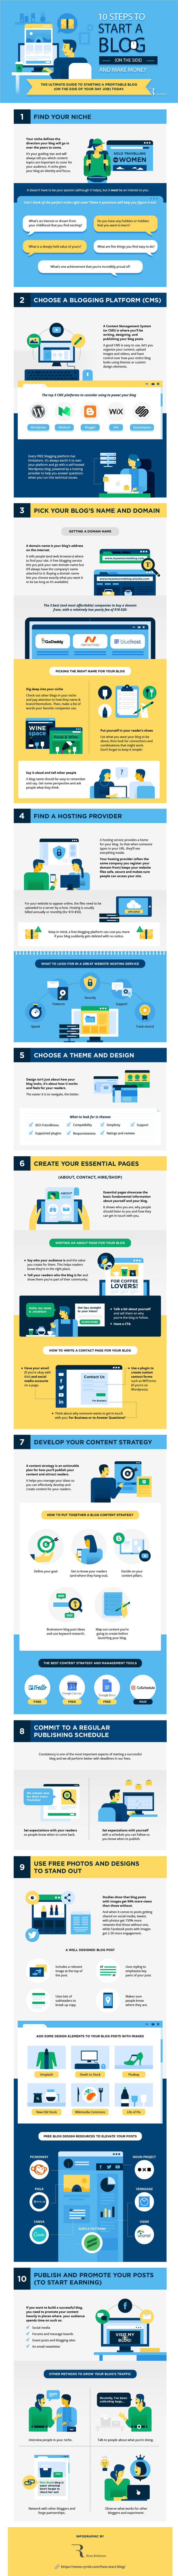 How to Start a Blog and Make Money (Infographic) by Ryan Robinson ryrob dot com